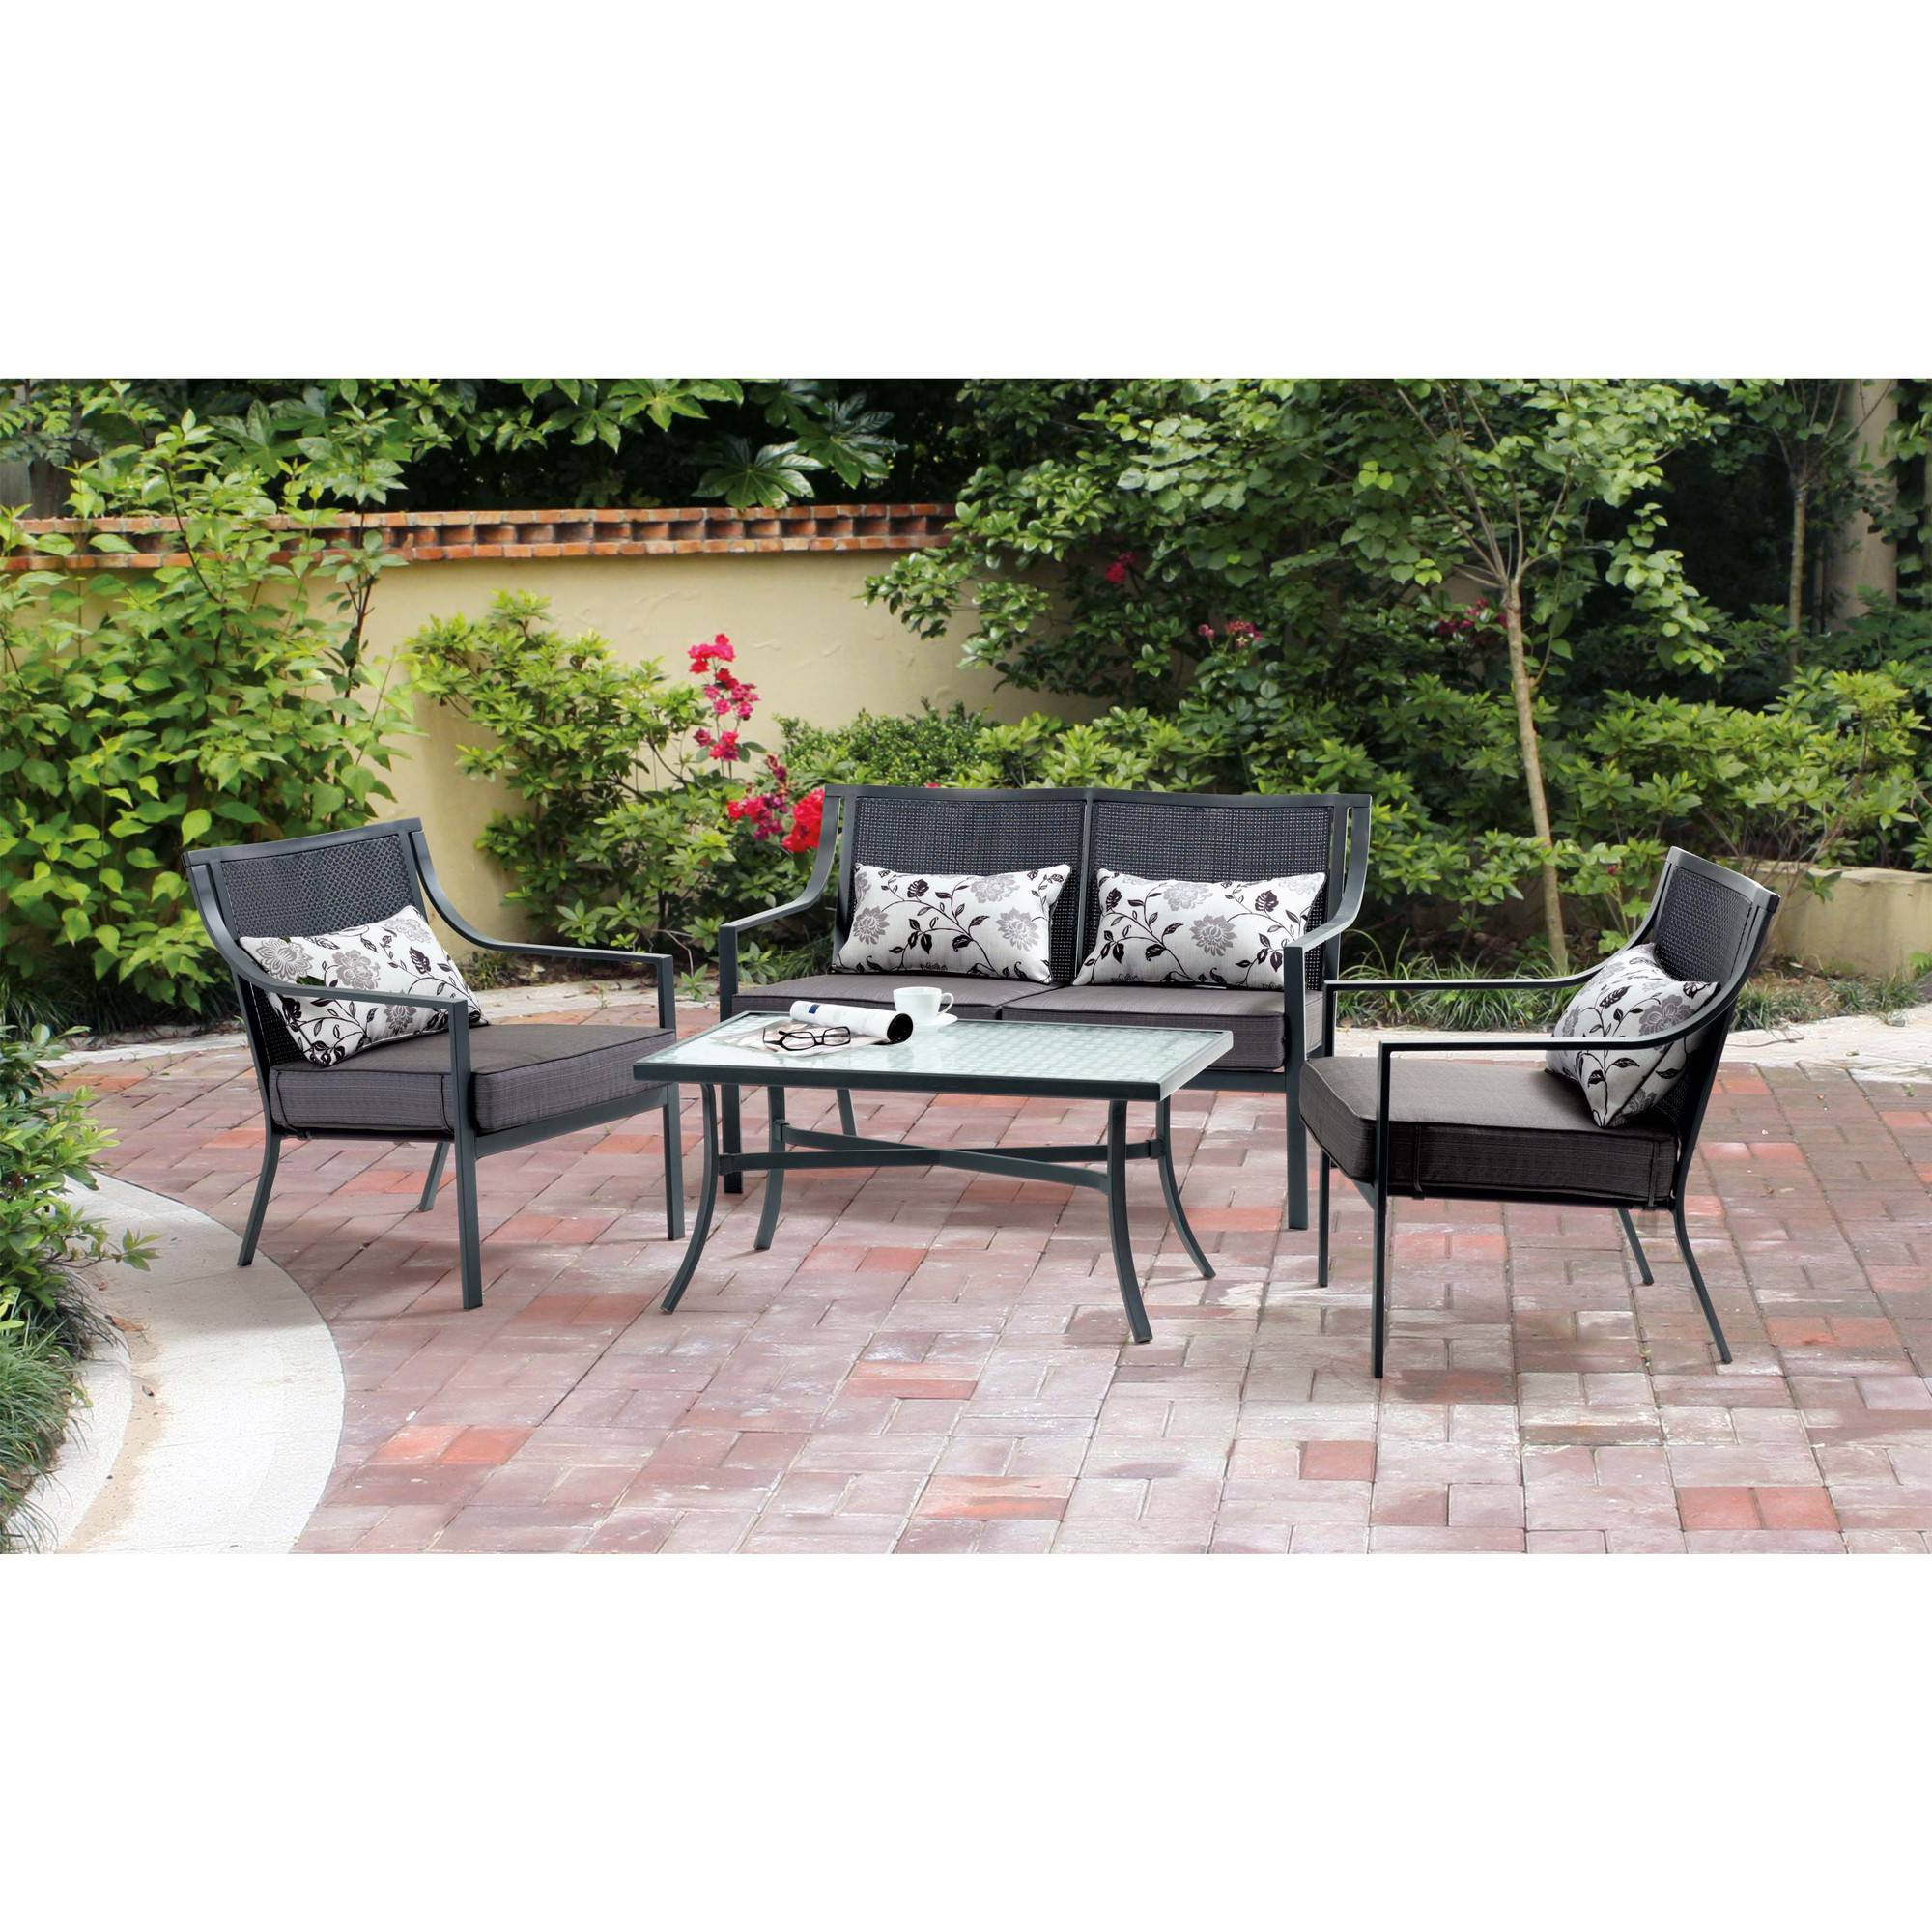 Mainstays Alexandra Square 4-Piece Patio Conversation Set, Grey with Leaves, Seats 4 by Generic